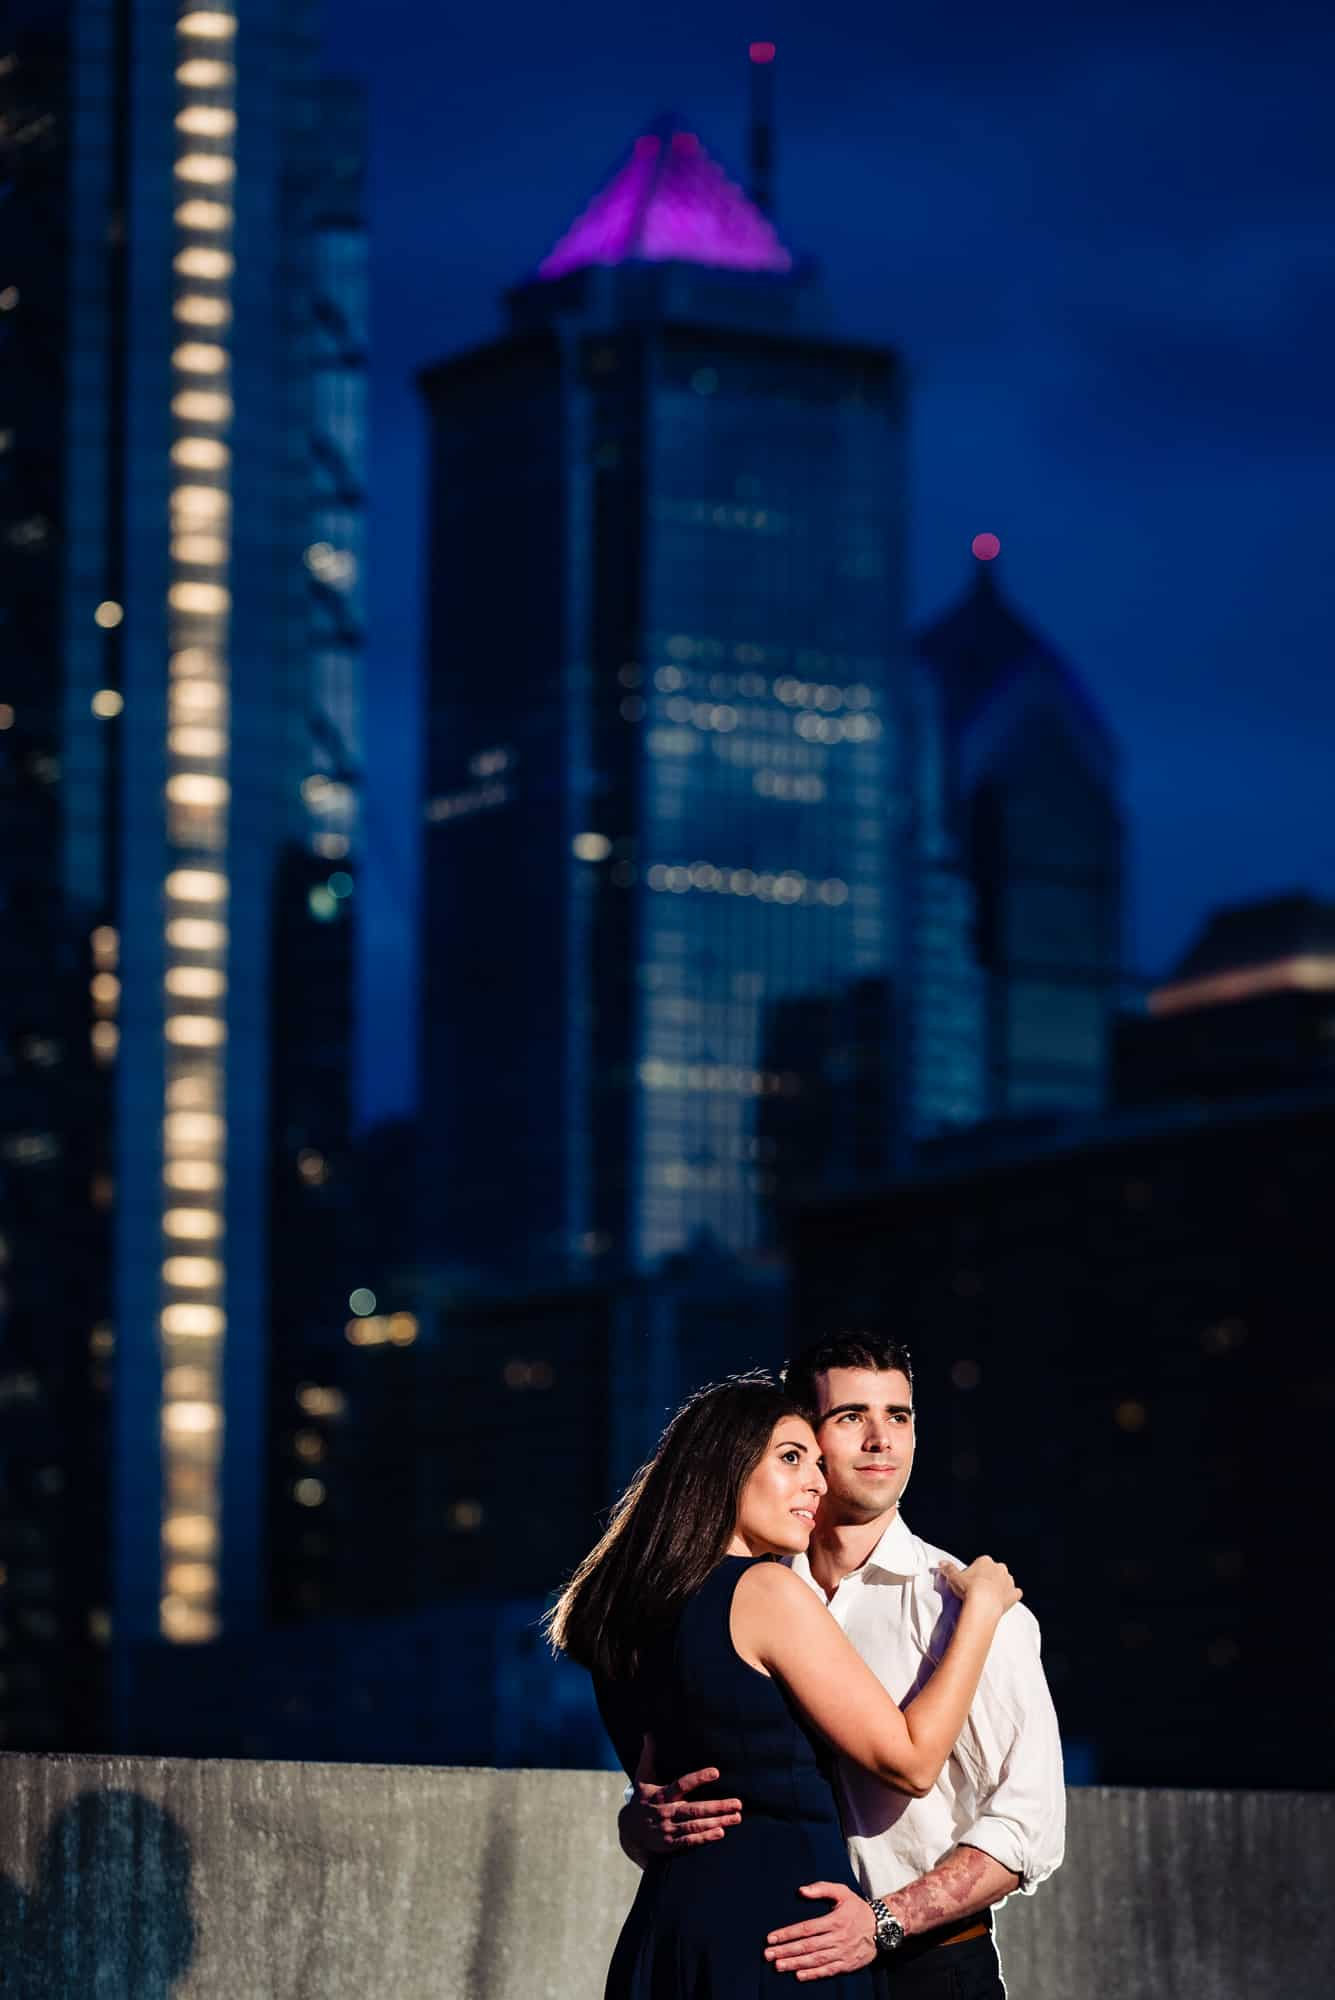 couple embracing on rooftop at night